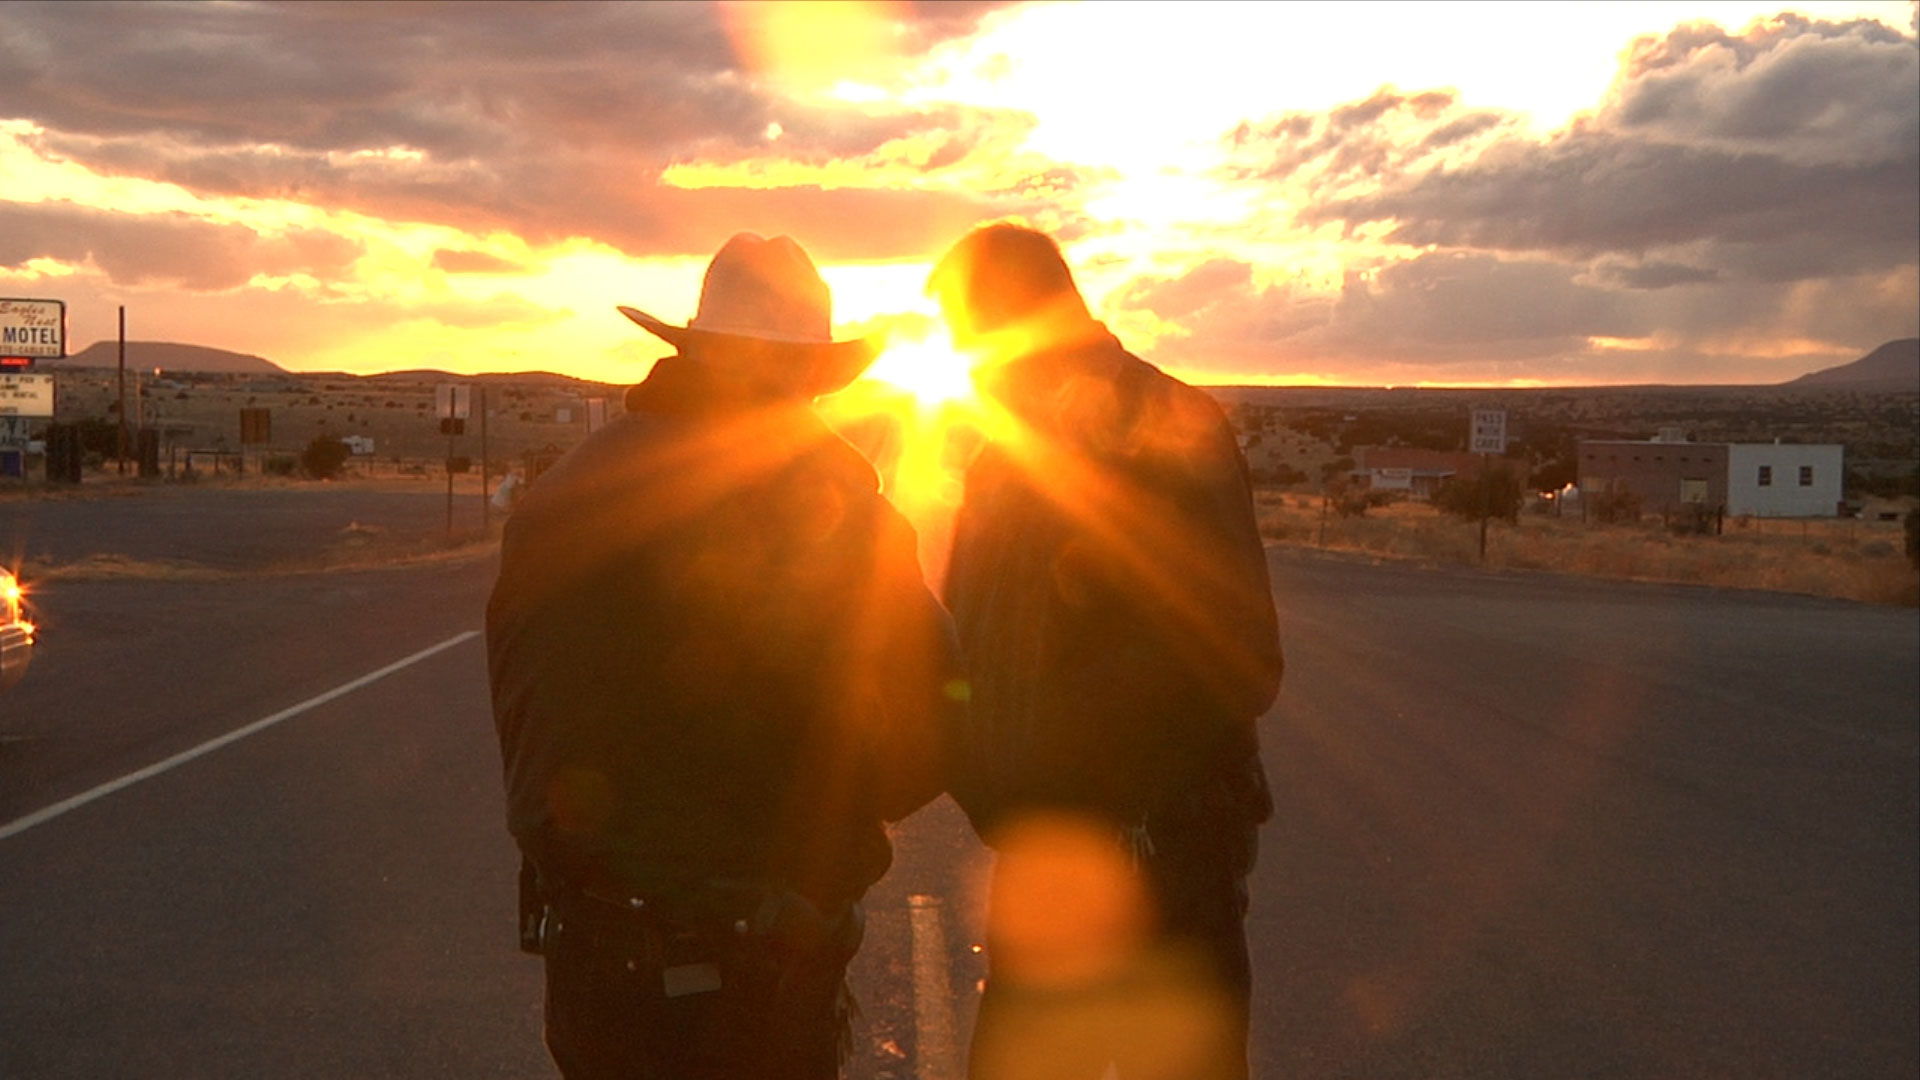 Sheriffs in New Mexico at Sunset, in House I Live In, photo by Derek Hallquist